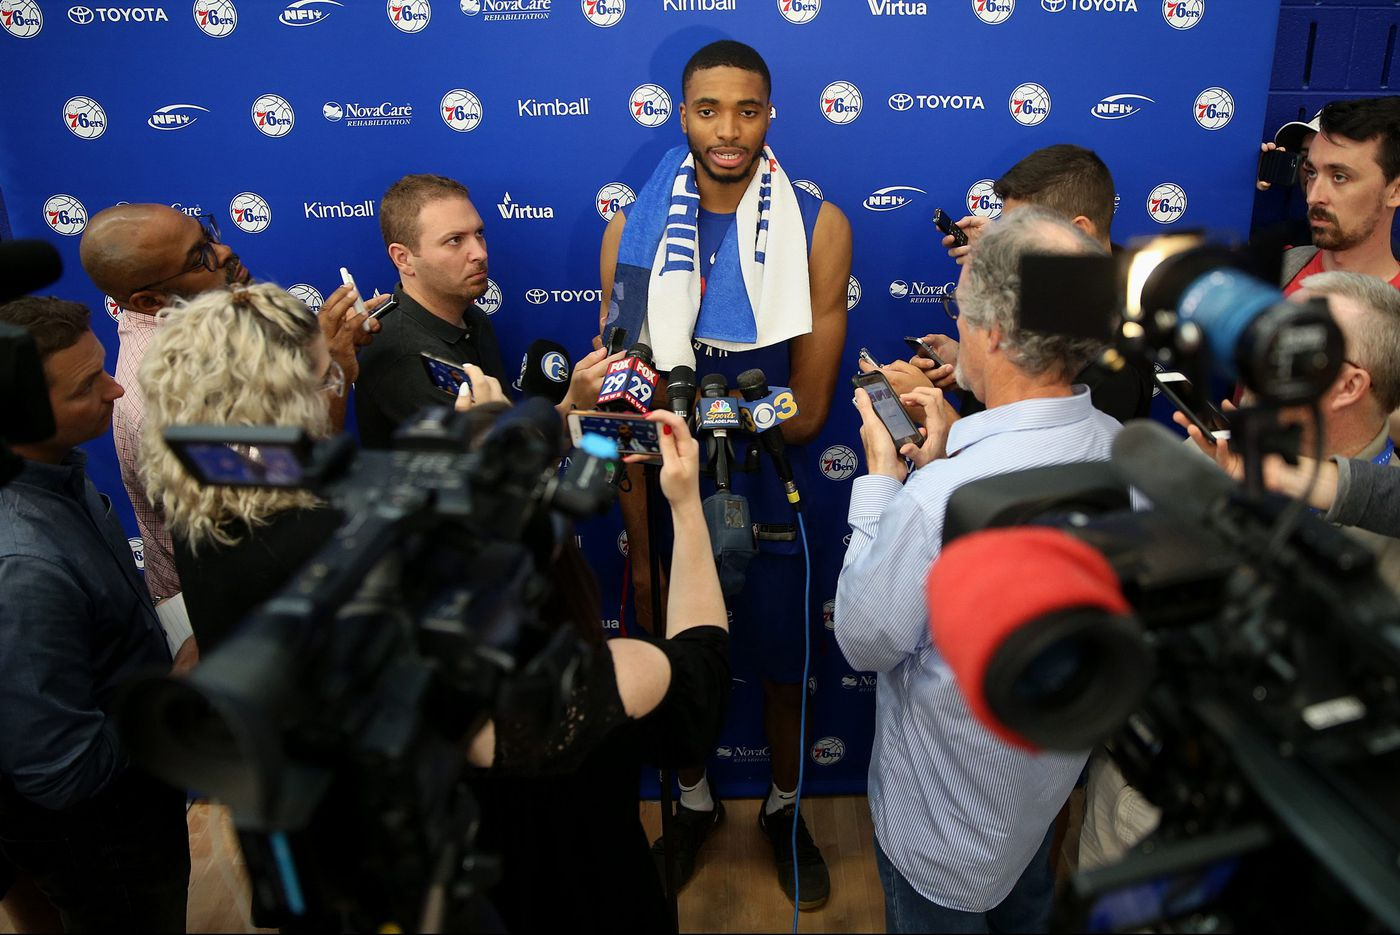 Villanova's Mikal Bridges would be perfect fit for Sixers, if they can get him | Mike Sielski